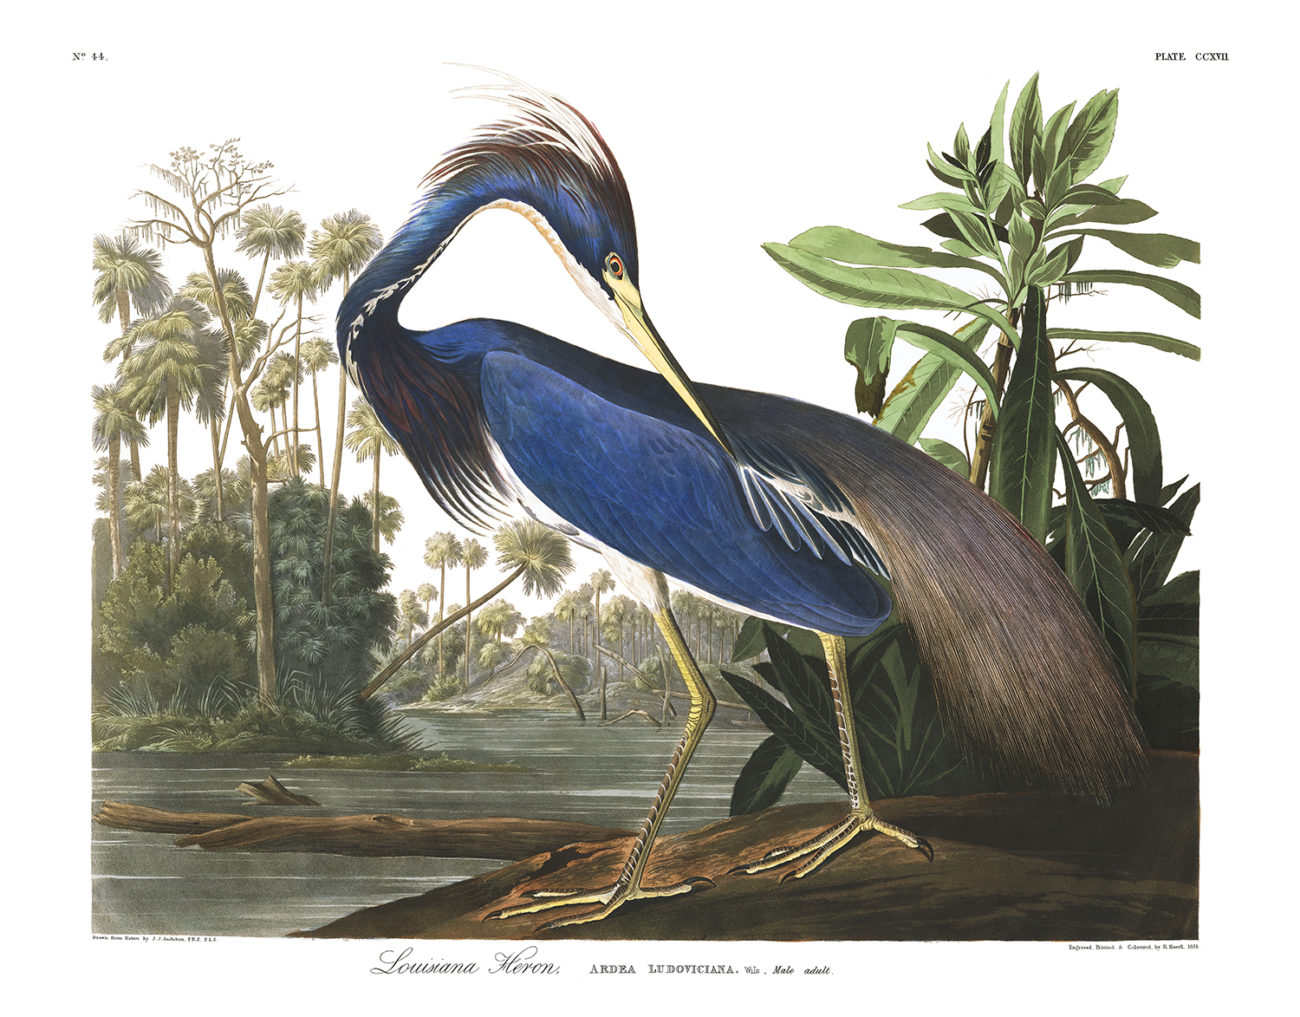 Plate 217 - Louisiana Heron